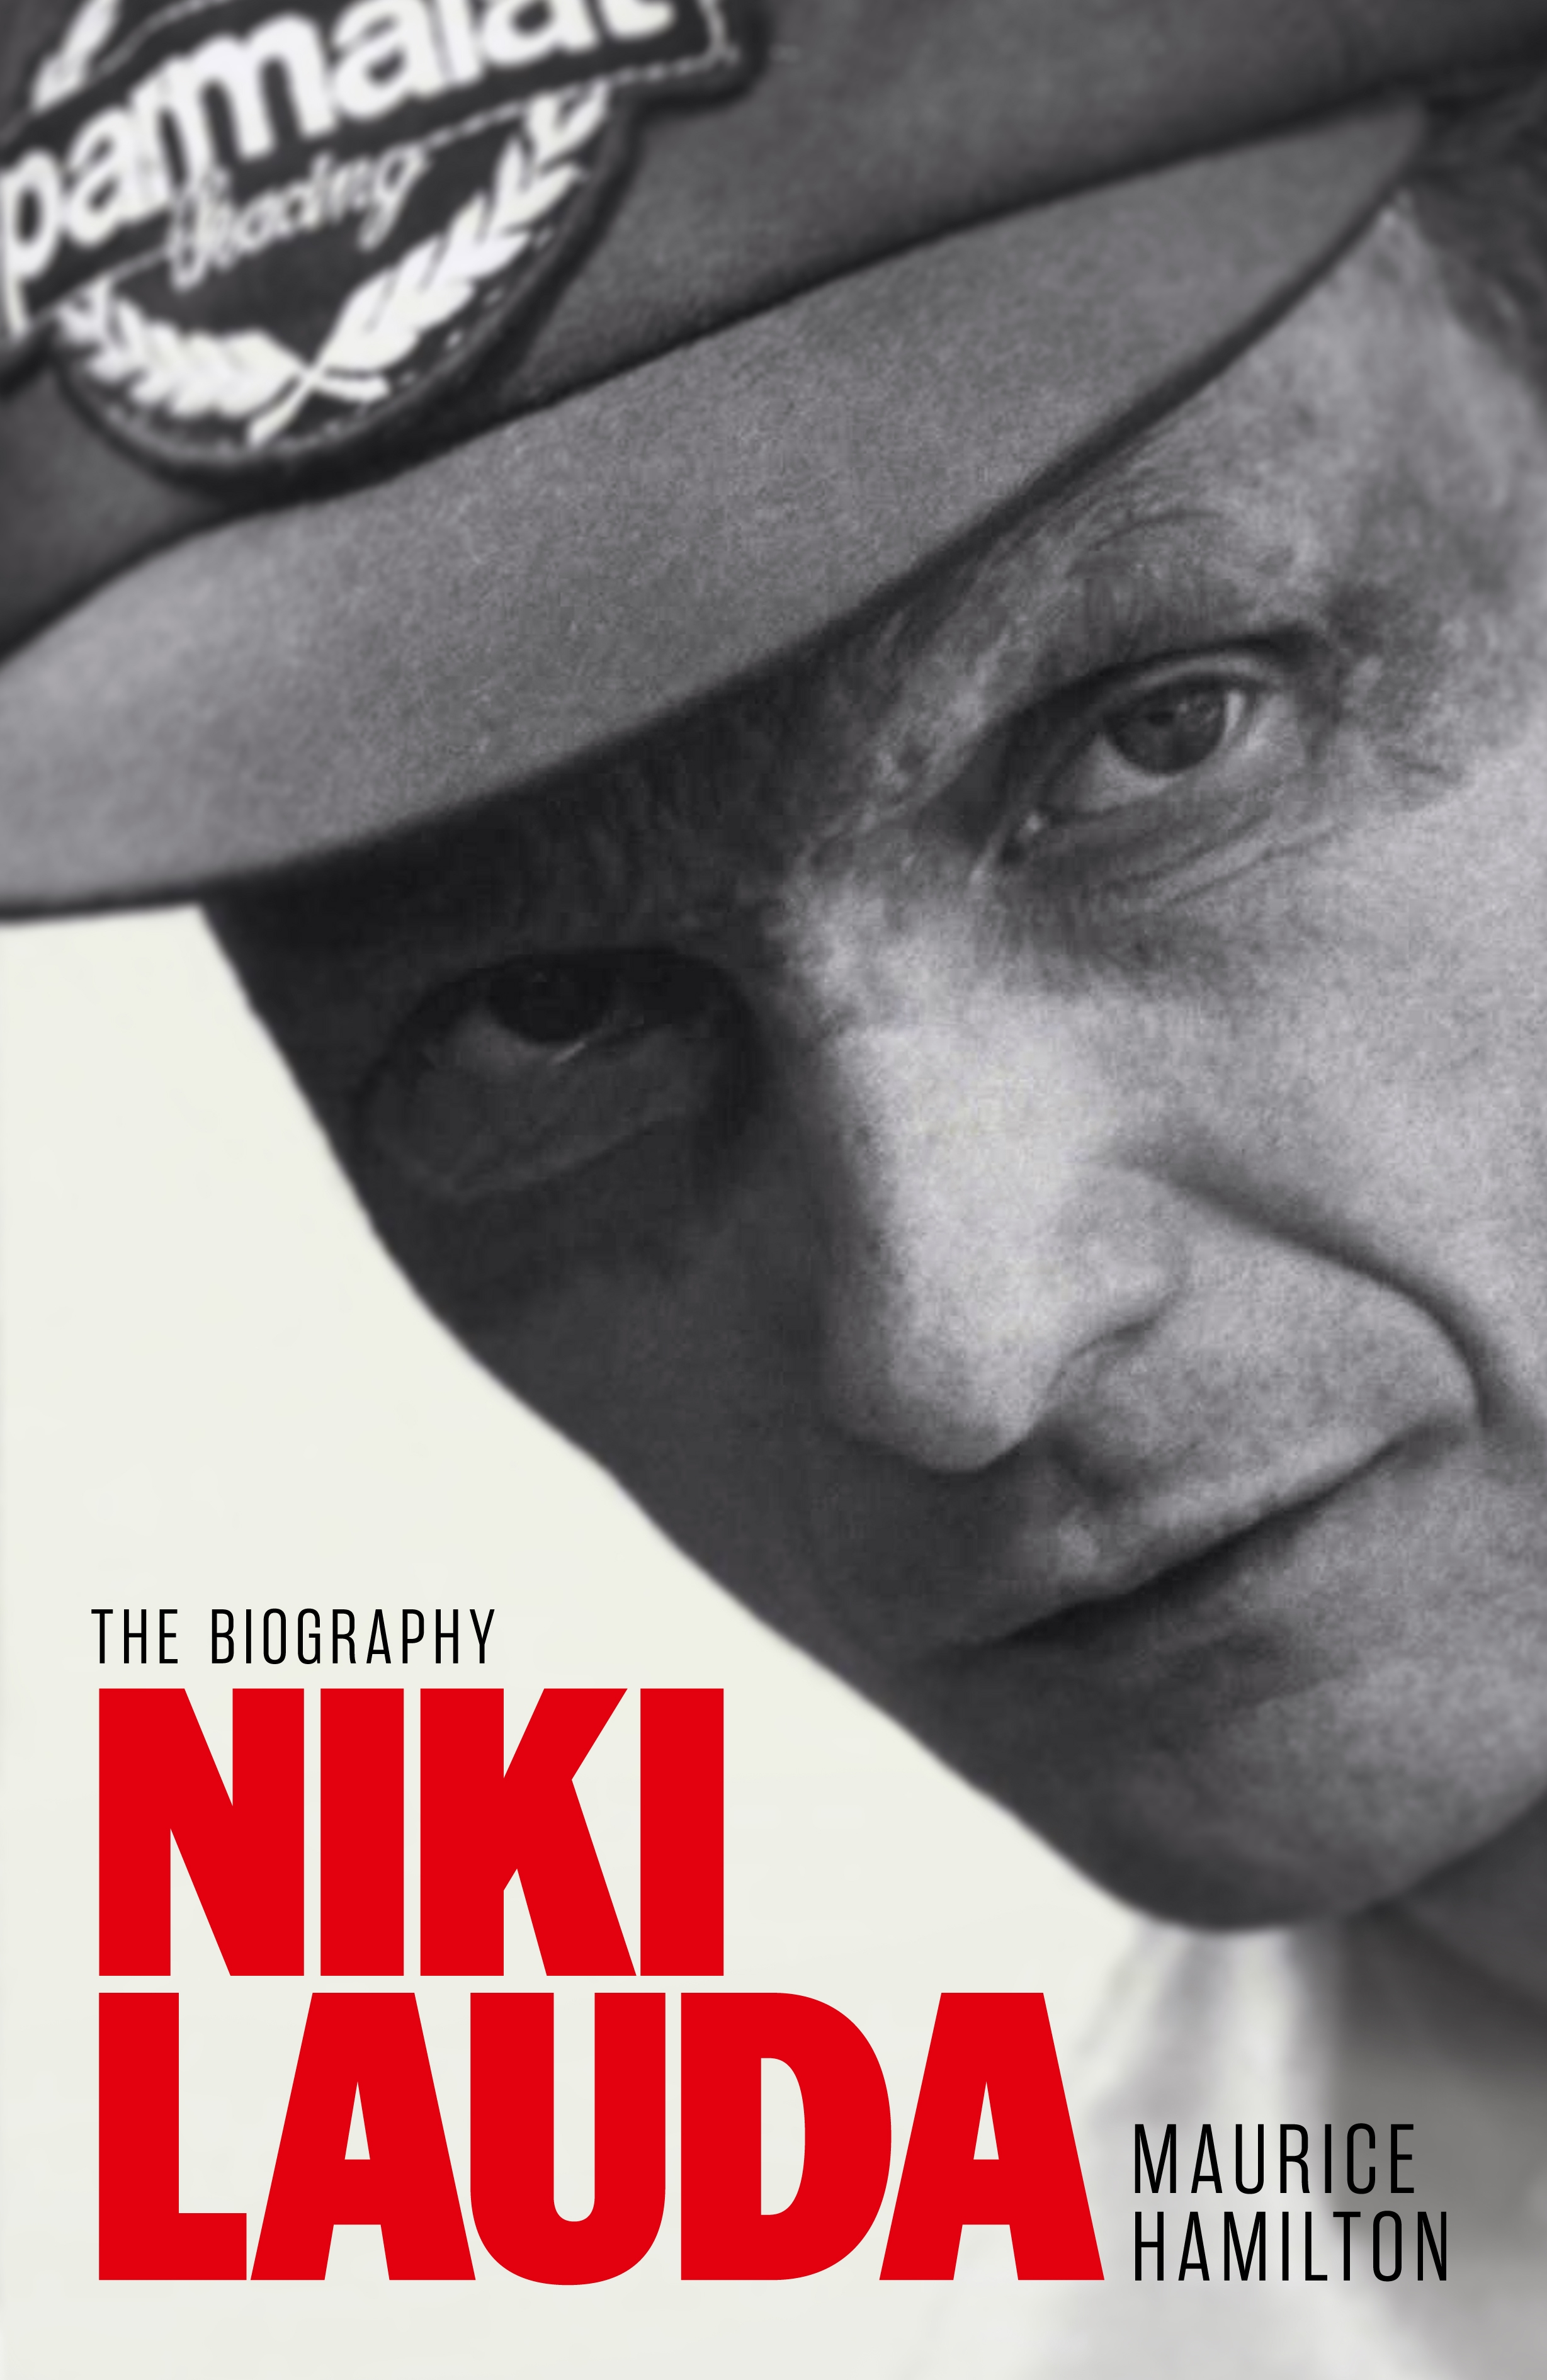 Niki Lauda Biography